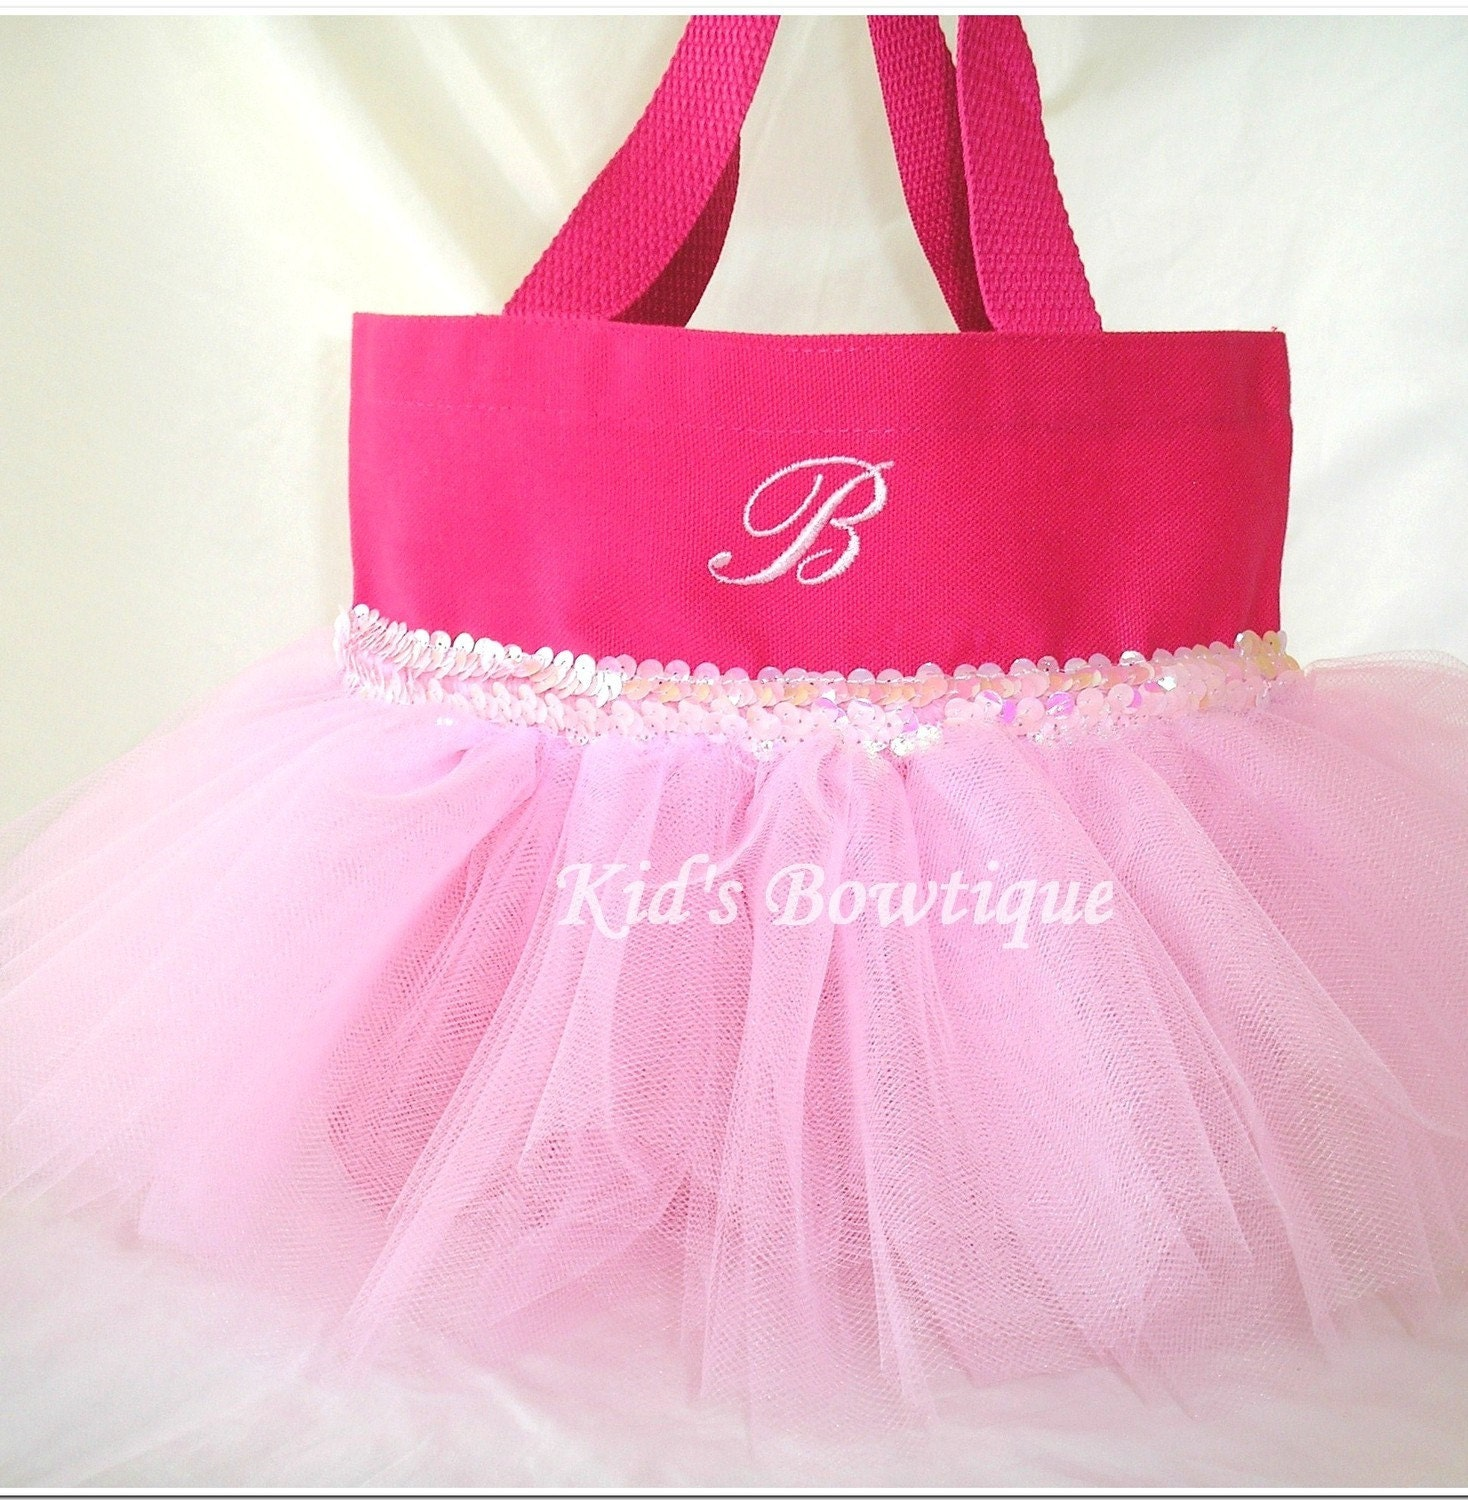 pink sequins tutu personalized bag monogrammed by kidsbowtique